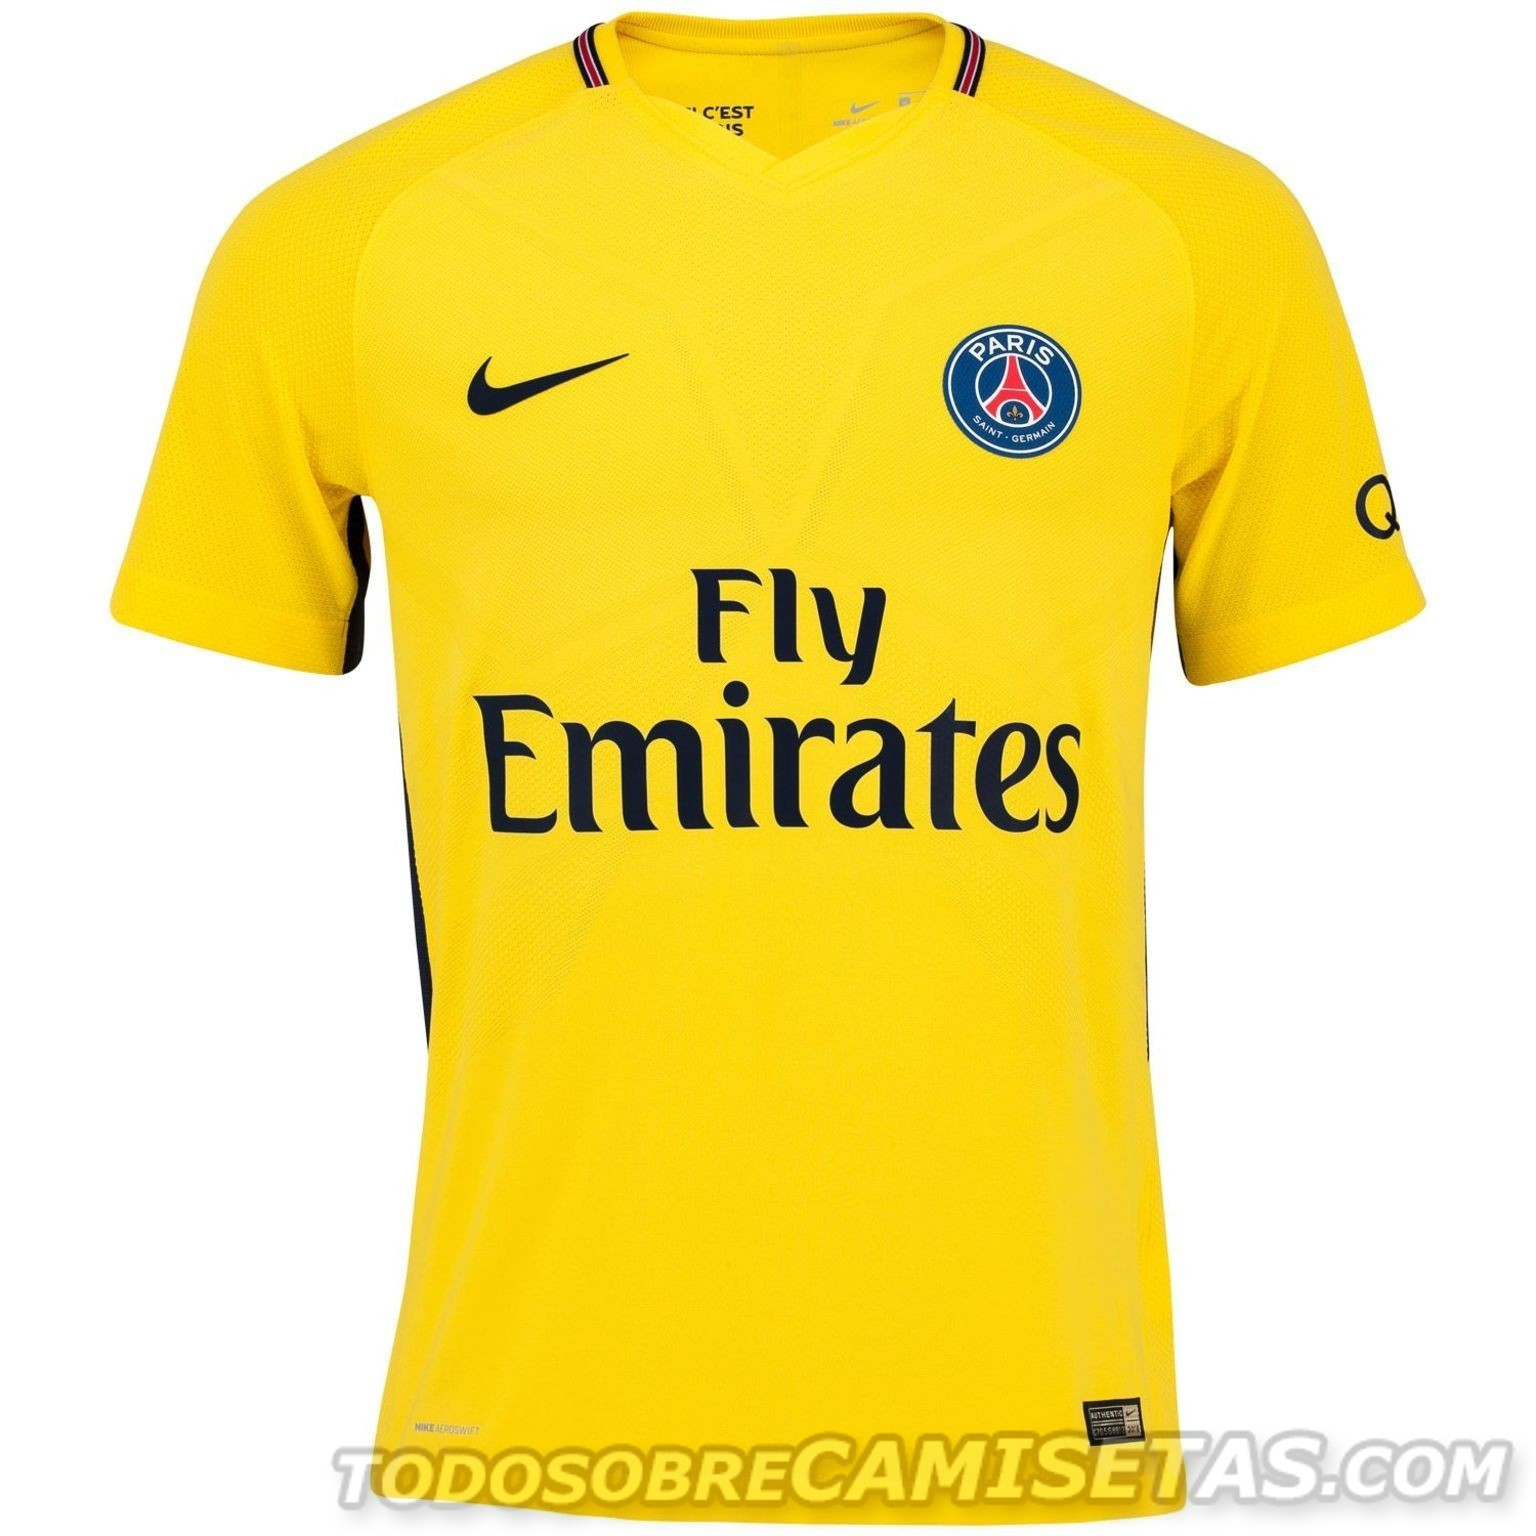 PSG-2017-18-new-away-kit-8.jpg